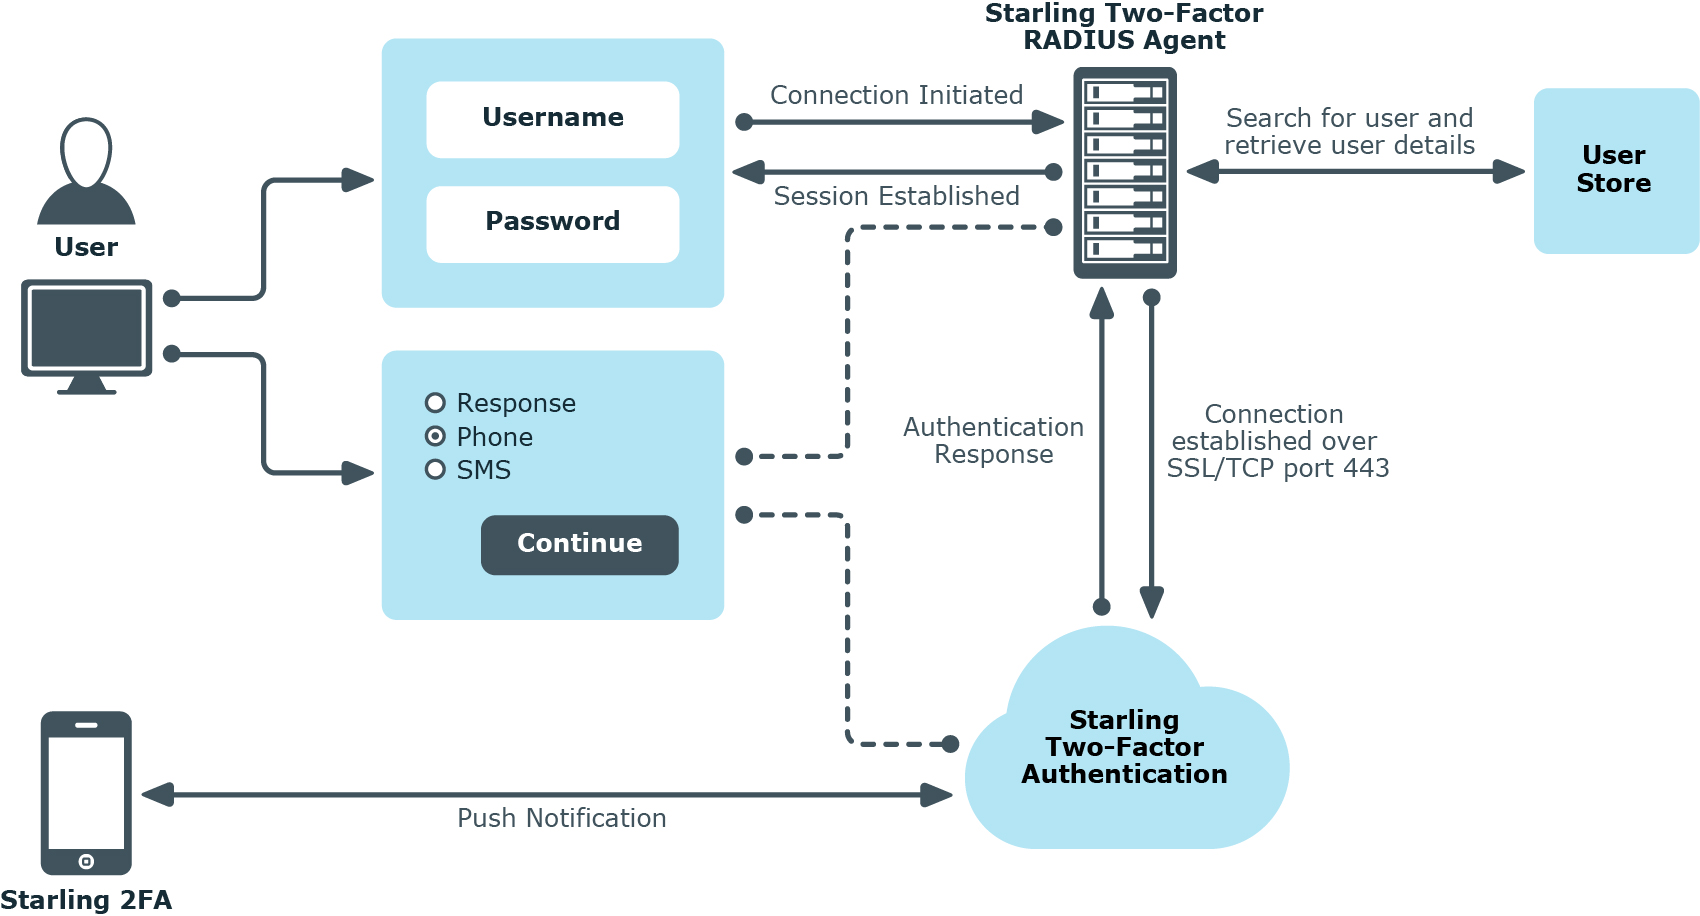 Starling Two-Factor Authentication Hosted - RADIUS Agent